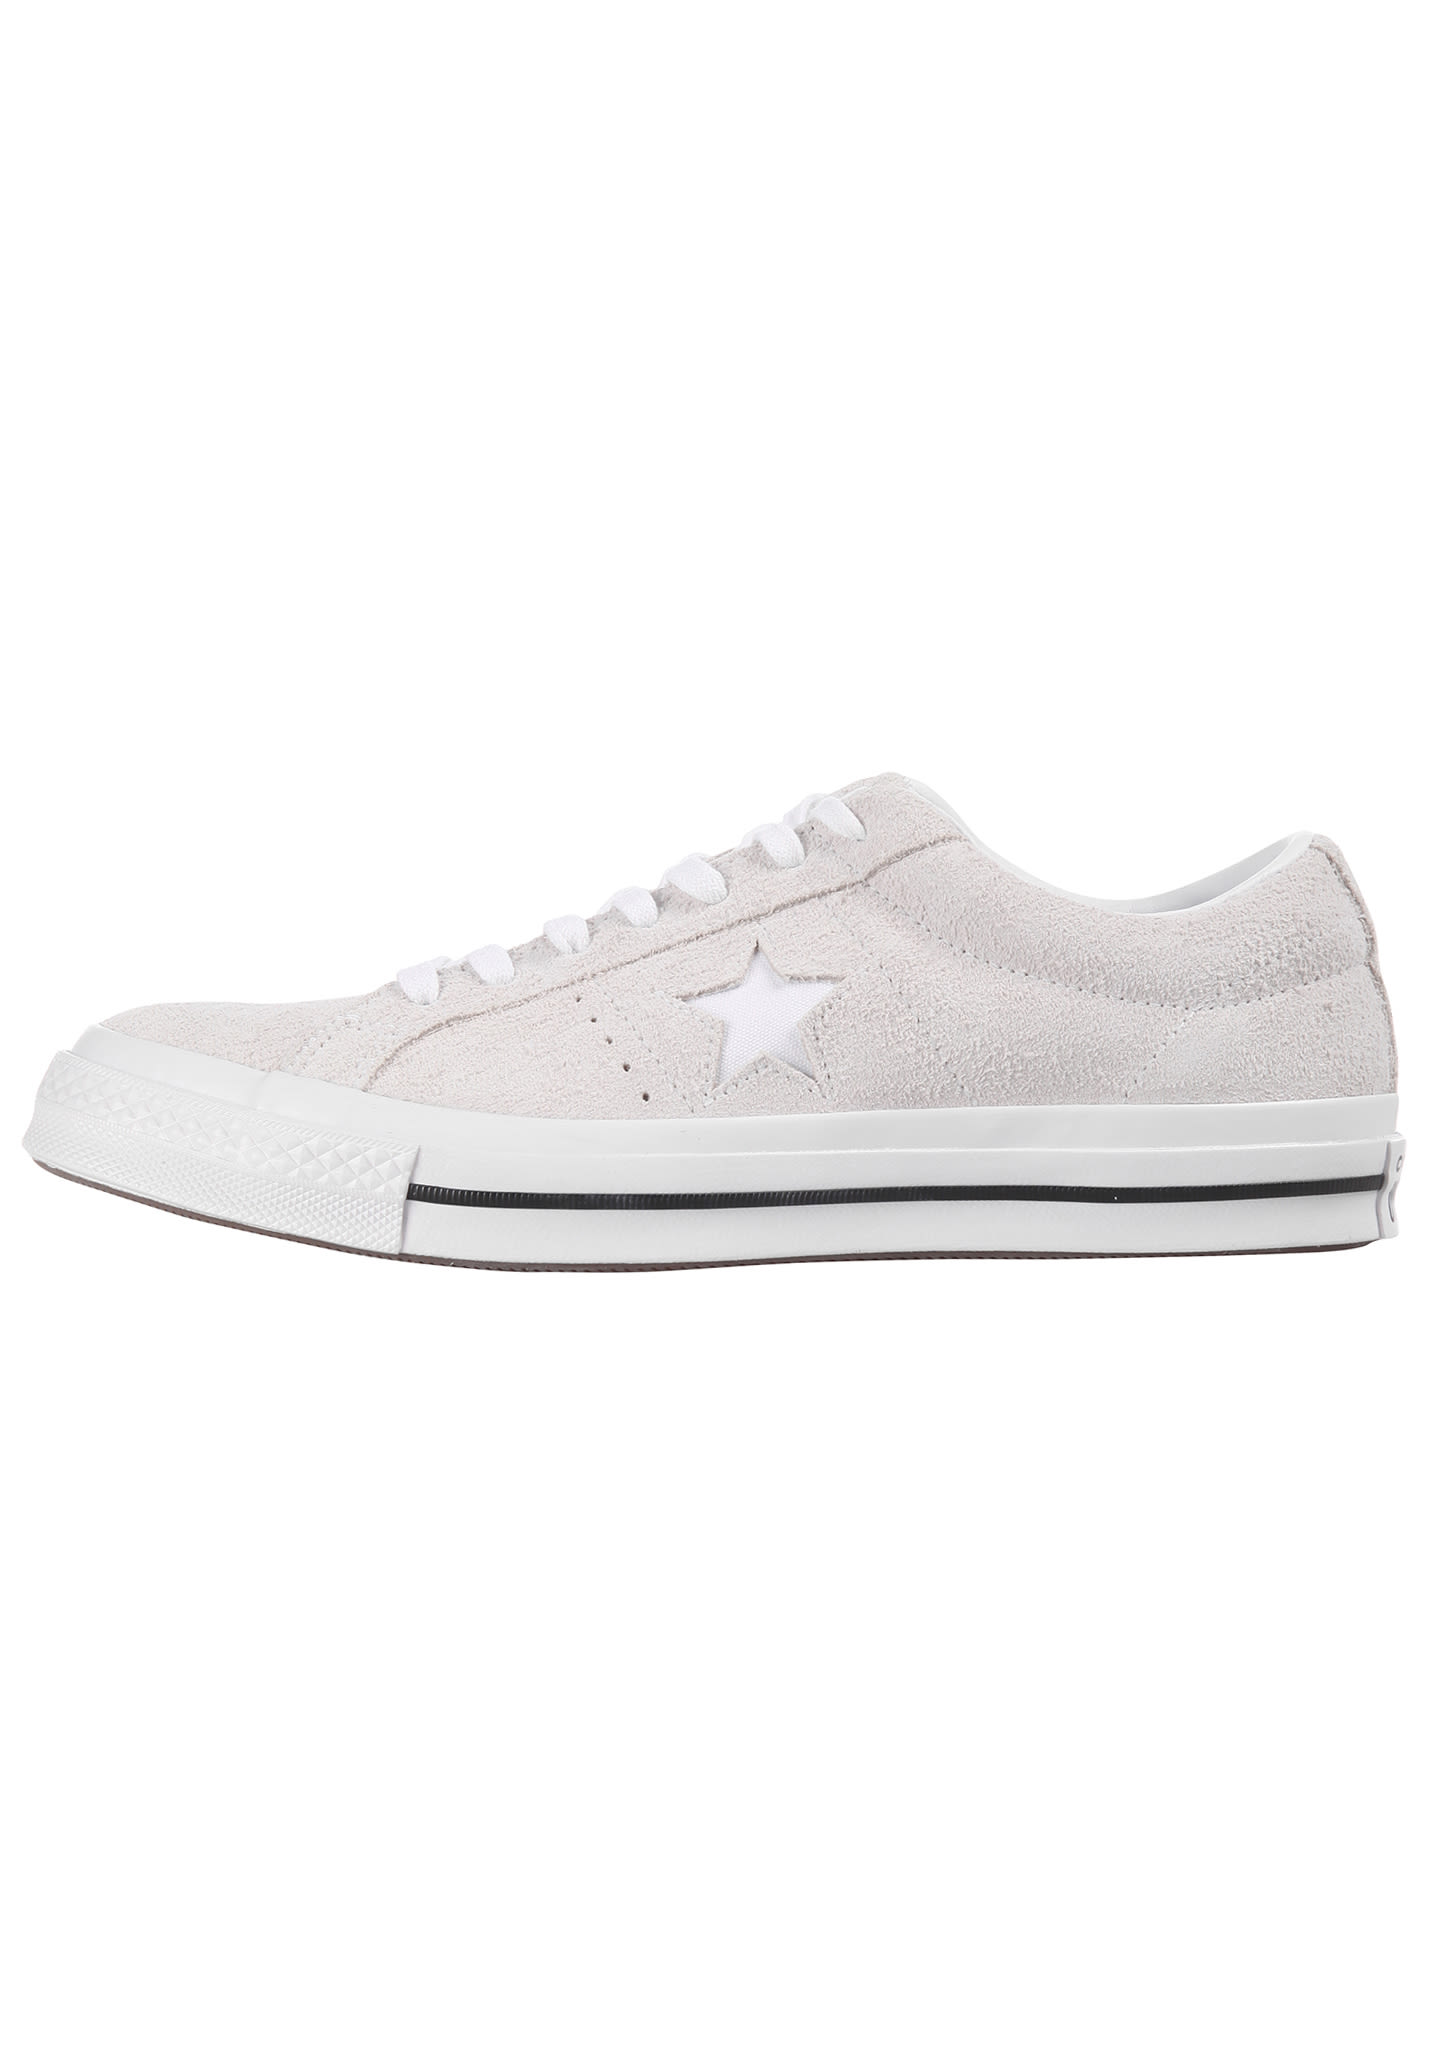 Converse One Star Ox - Sneakers - Beige - Planet Sports bde69db4f